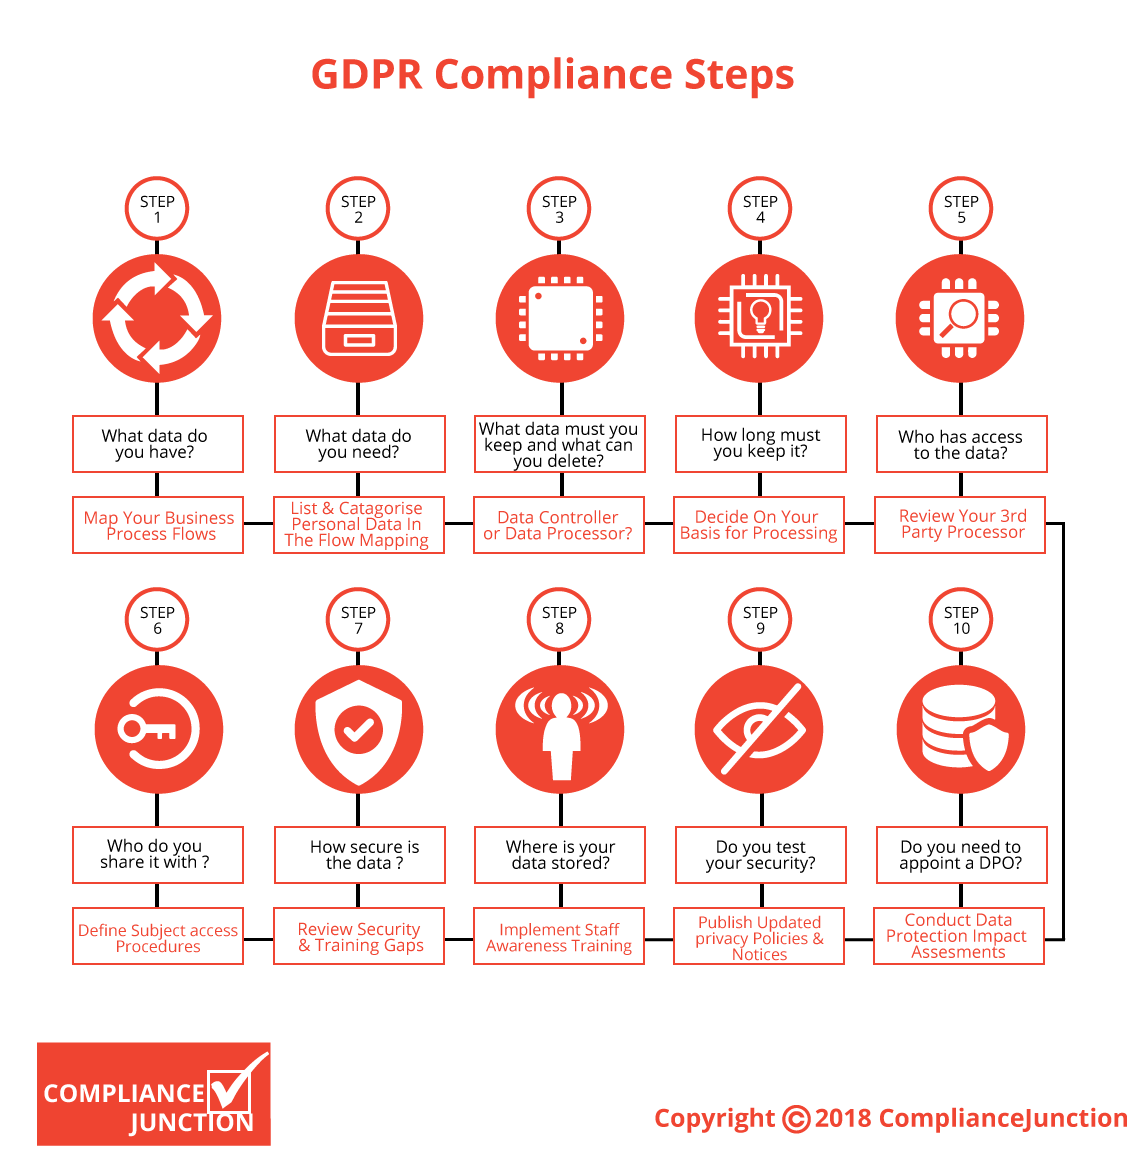 Pin By Ludovic30 On Gdpr Data Protection Officer General Data Protection Regulation Internal Communications